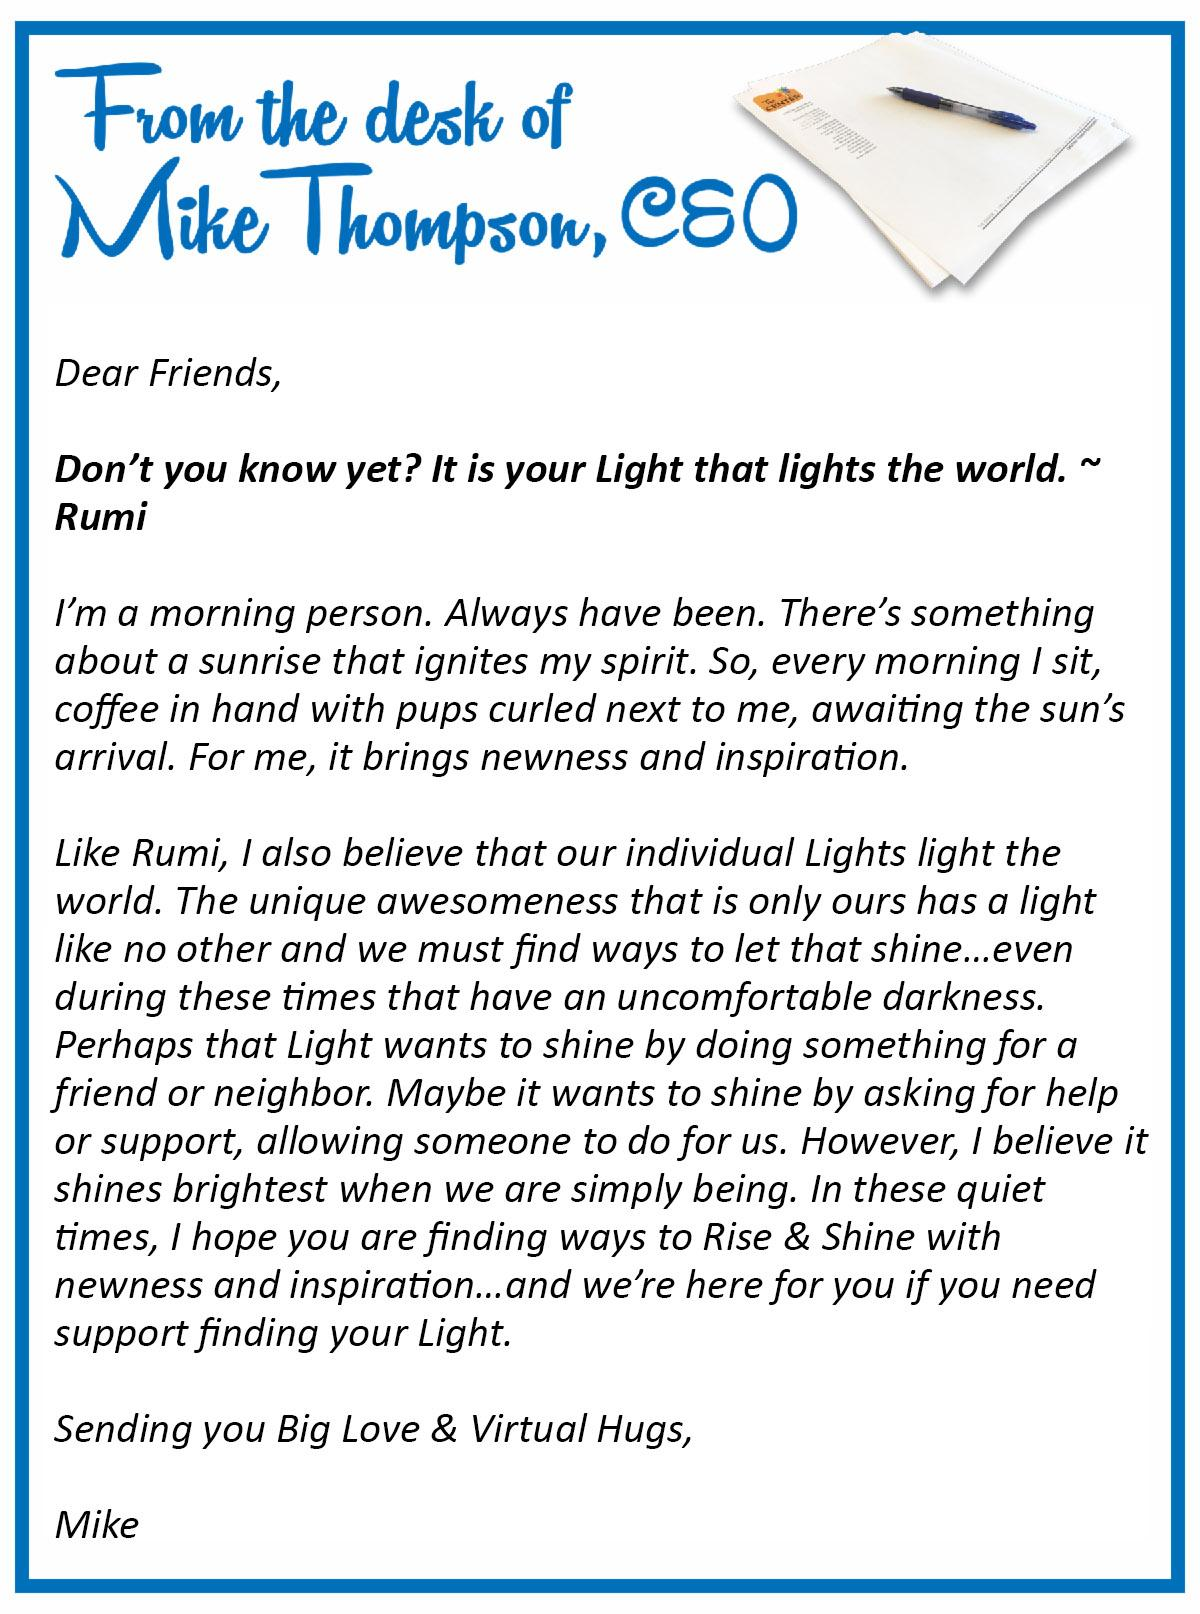 From the Desk of Mike Thompson May 20 2020